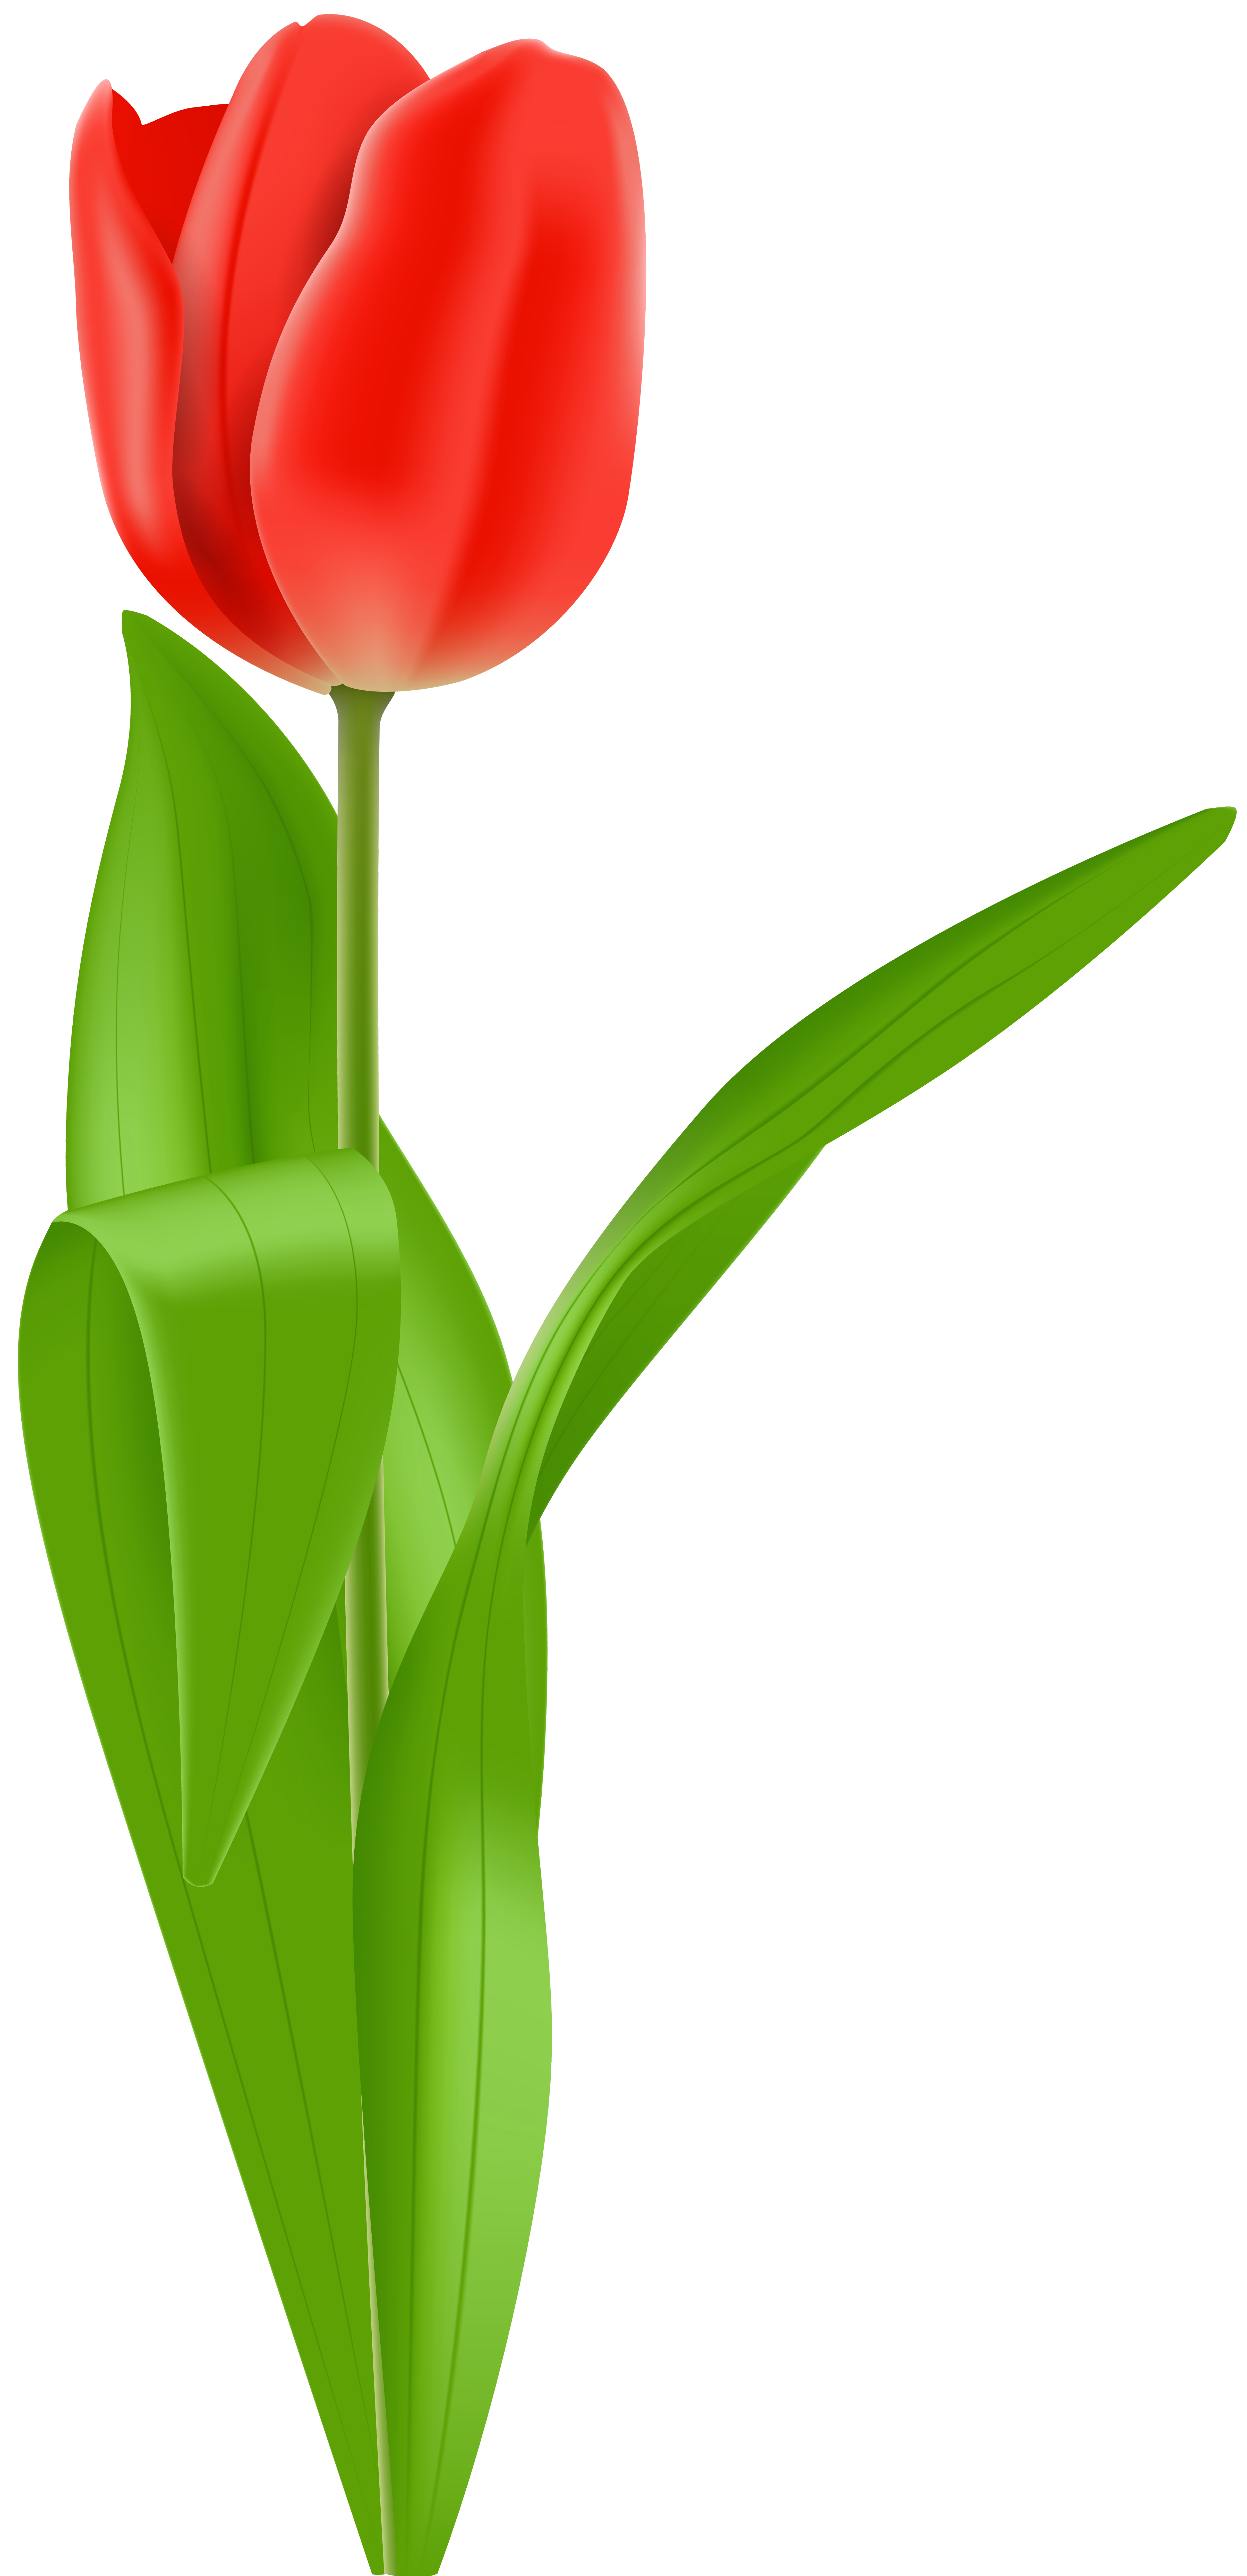 4842x9999 Red Tulip Png Clip Art Imageu200b Gallery Yopriceville